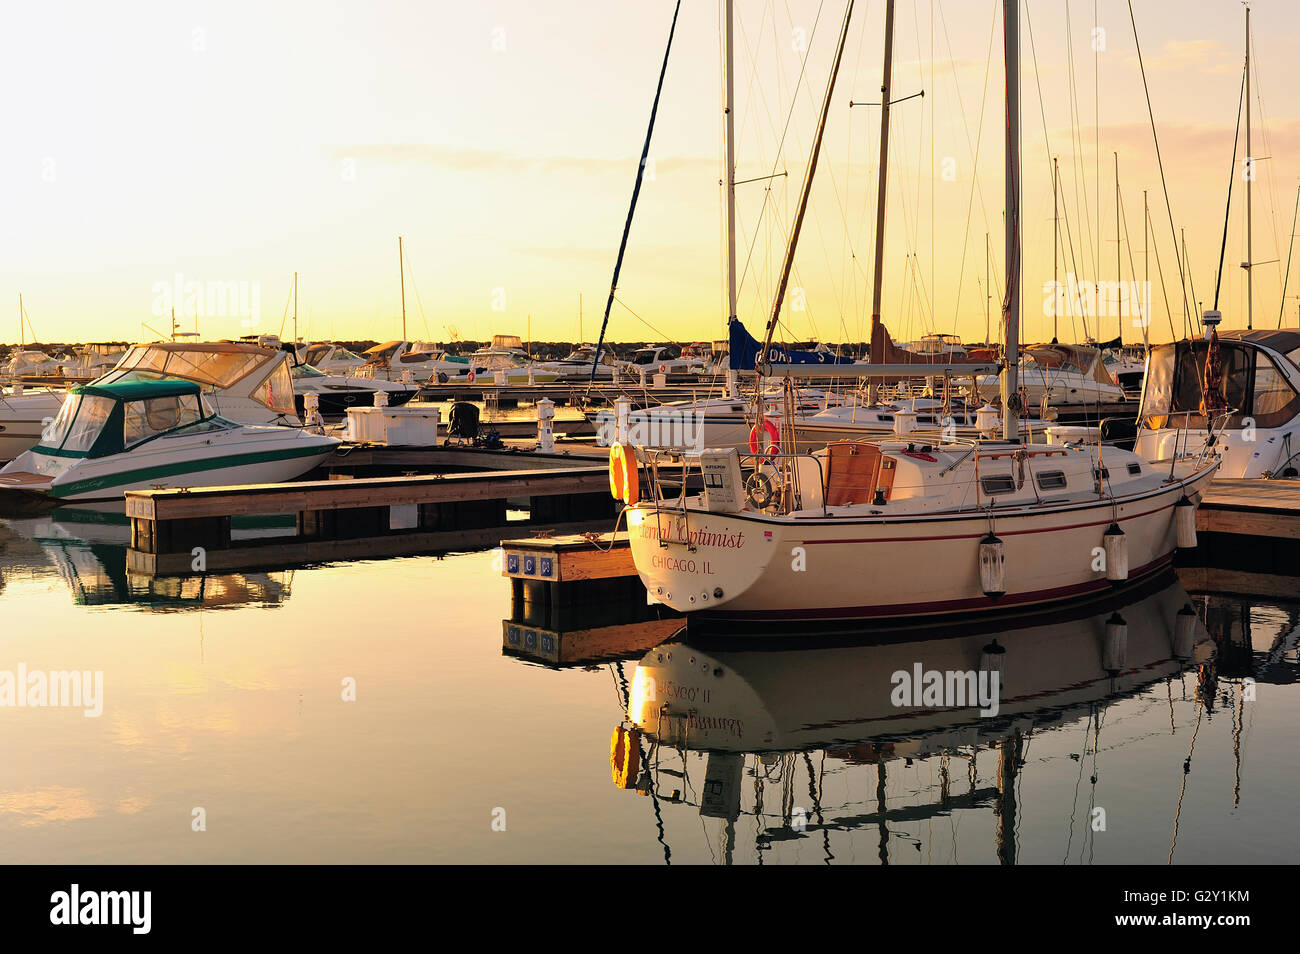 Chicago, Illinois, USA.Shortly after a colorful sunrise, calm water in Chicago's 31st Street Harbor provides - Stock Image